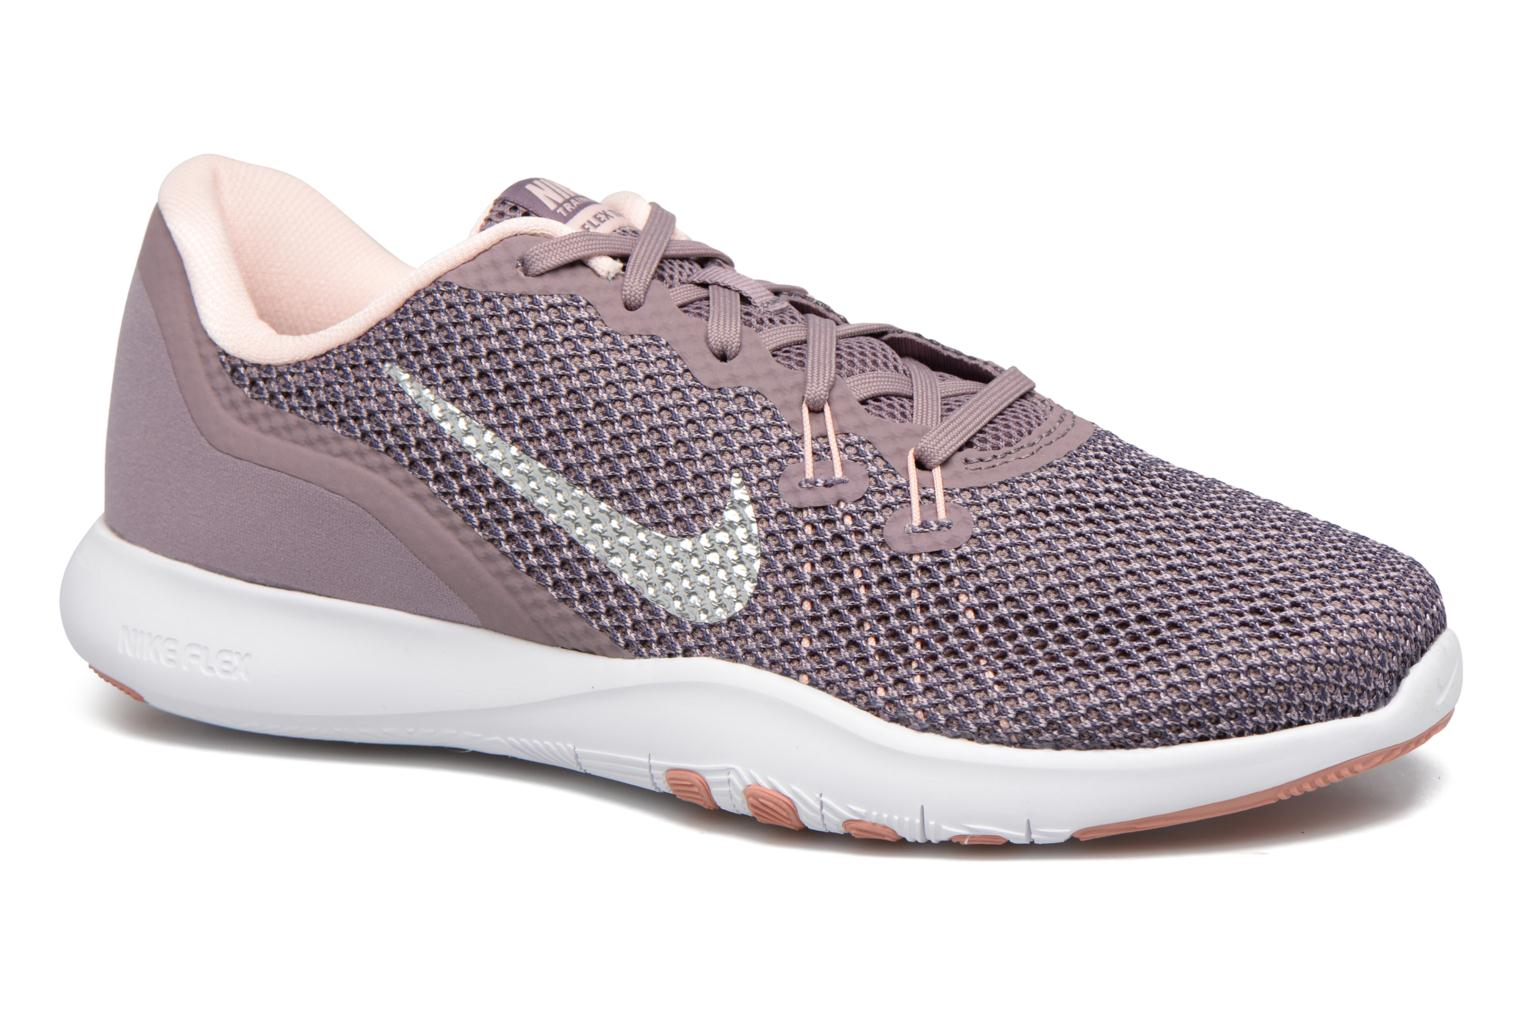 W Nike Flex Trainer 7 Bionic Taupe Grey/Metallic Silver-Sunset Tint